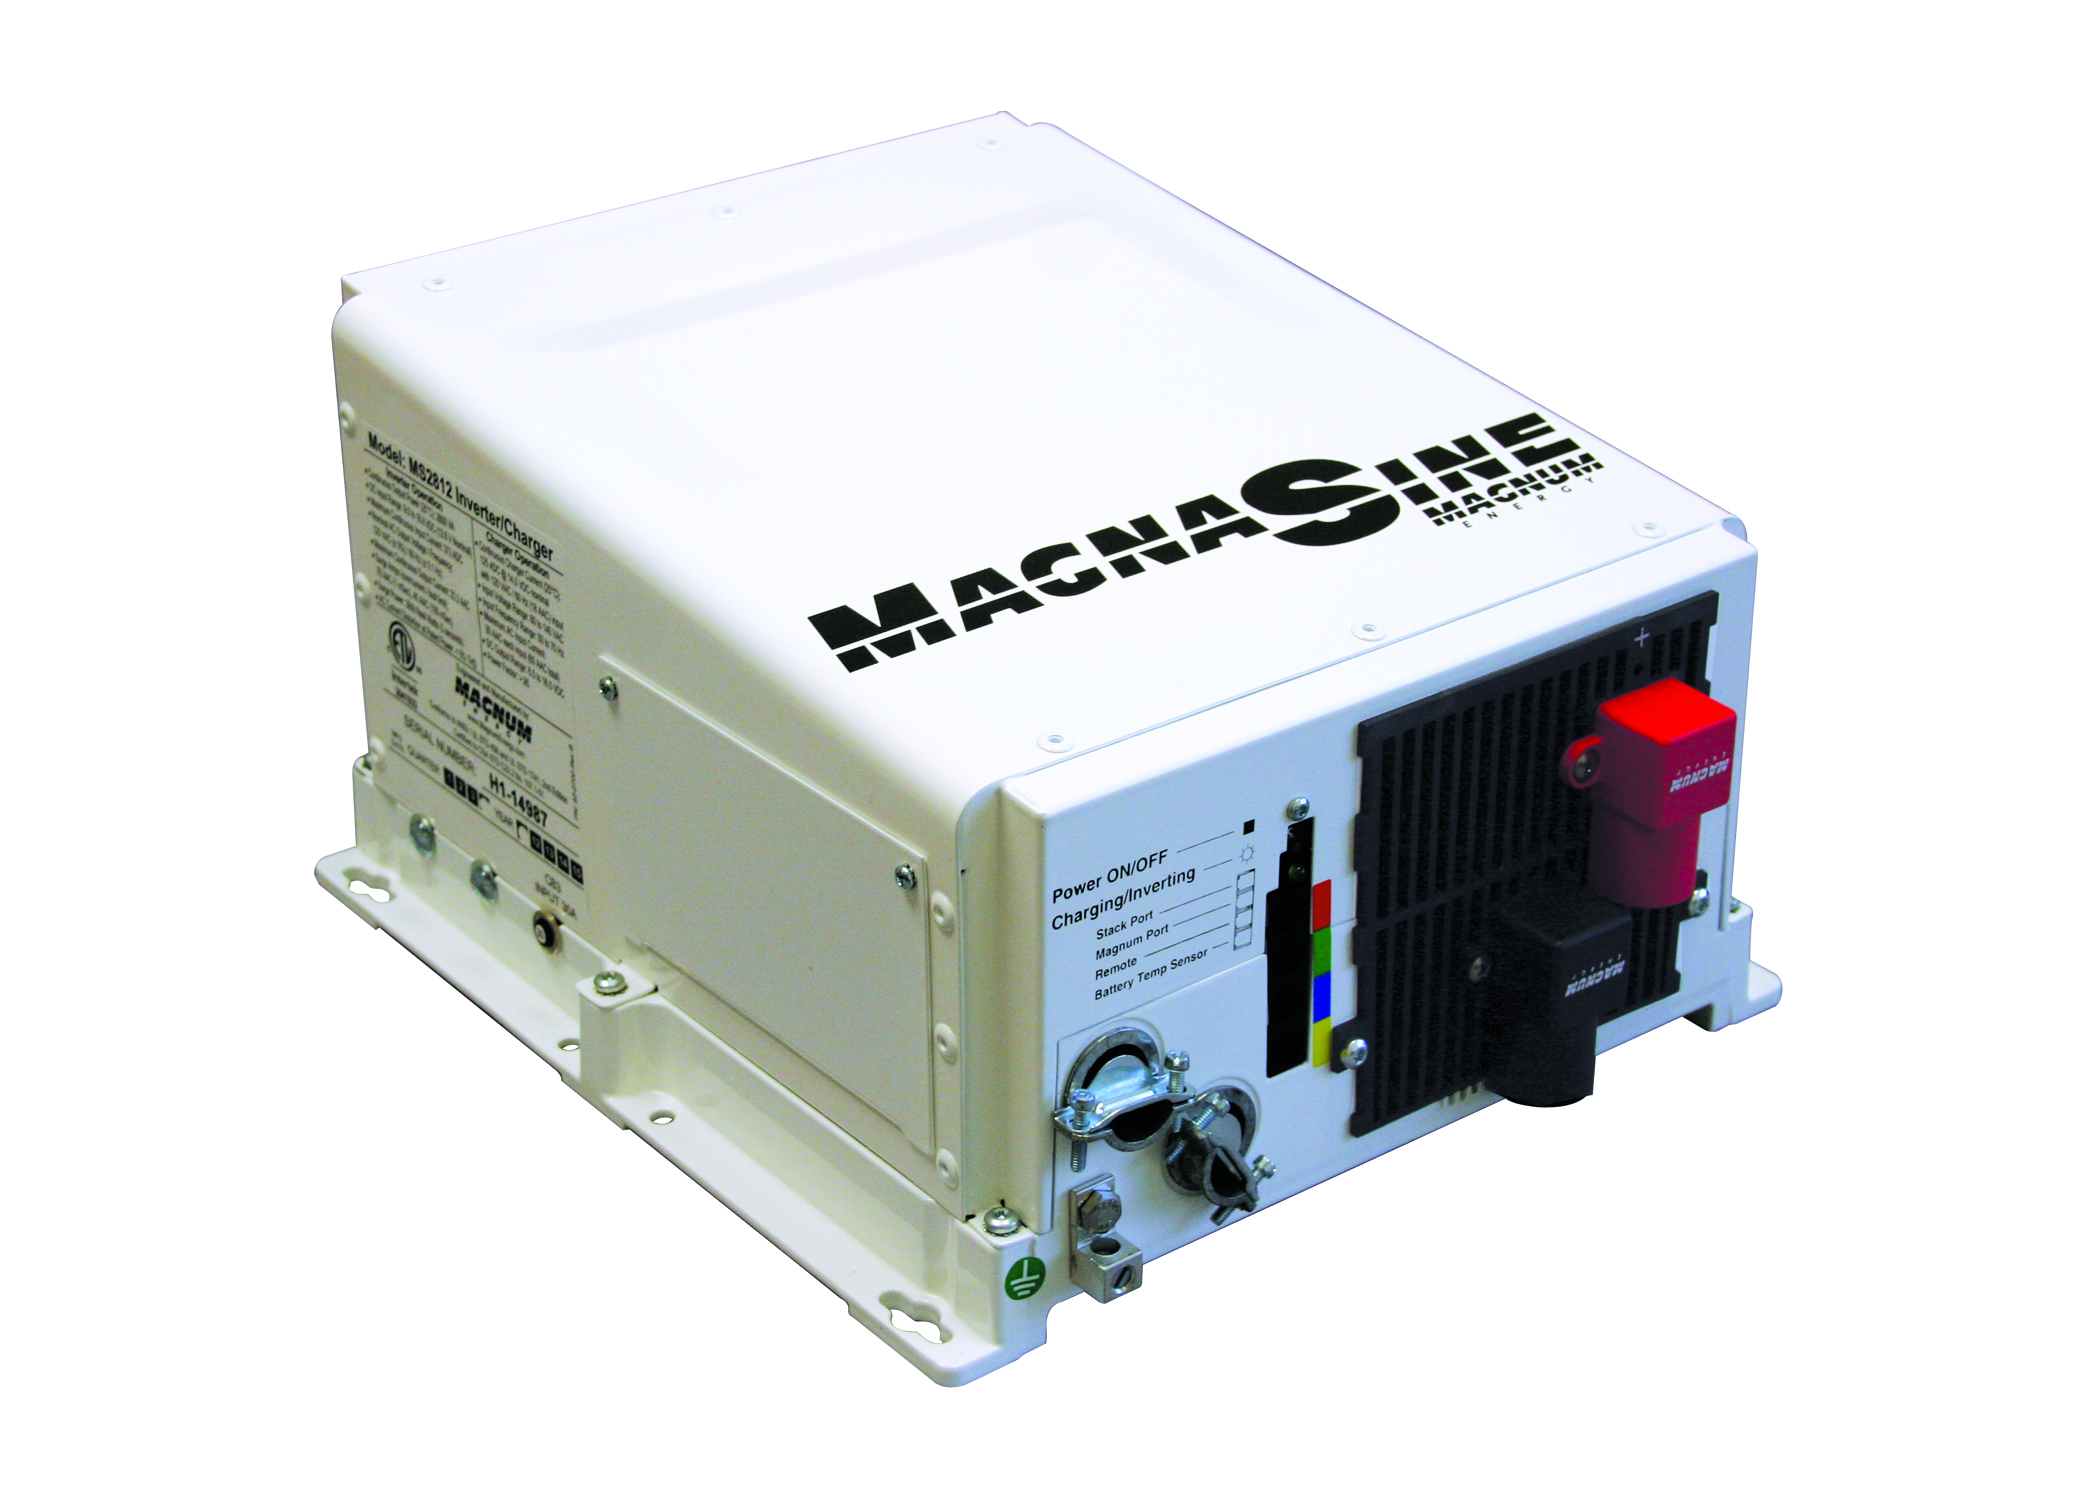 magnum-ms-2012-pure-sine-wave-inverter-2000w-12v-with-built-in-battery-charger-canada-bc.jpg